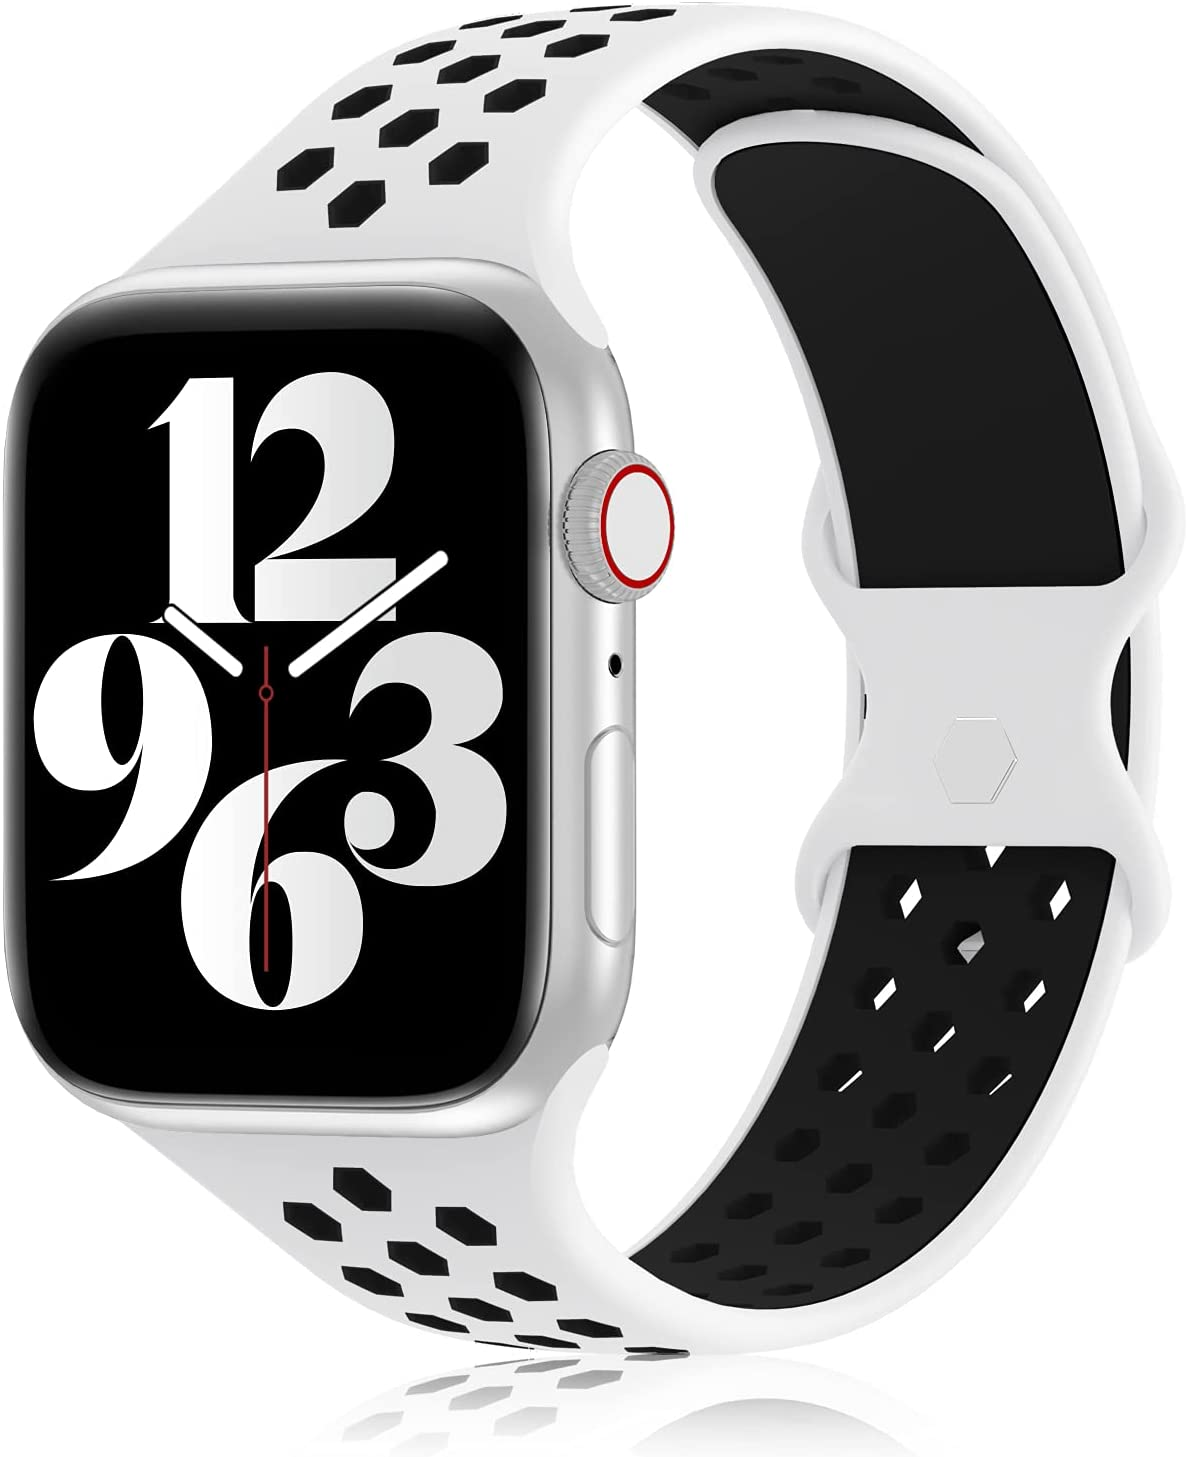 YAXIN Sports Band Compatible with Apple Watch Bands 38MM 40MM 42MM 44MM Women and Men,Breathable Soft Silicone Replacement Strap Double-color Air Holes Bands for iWatch Series 6 5 4 3 2 4 SE